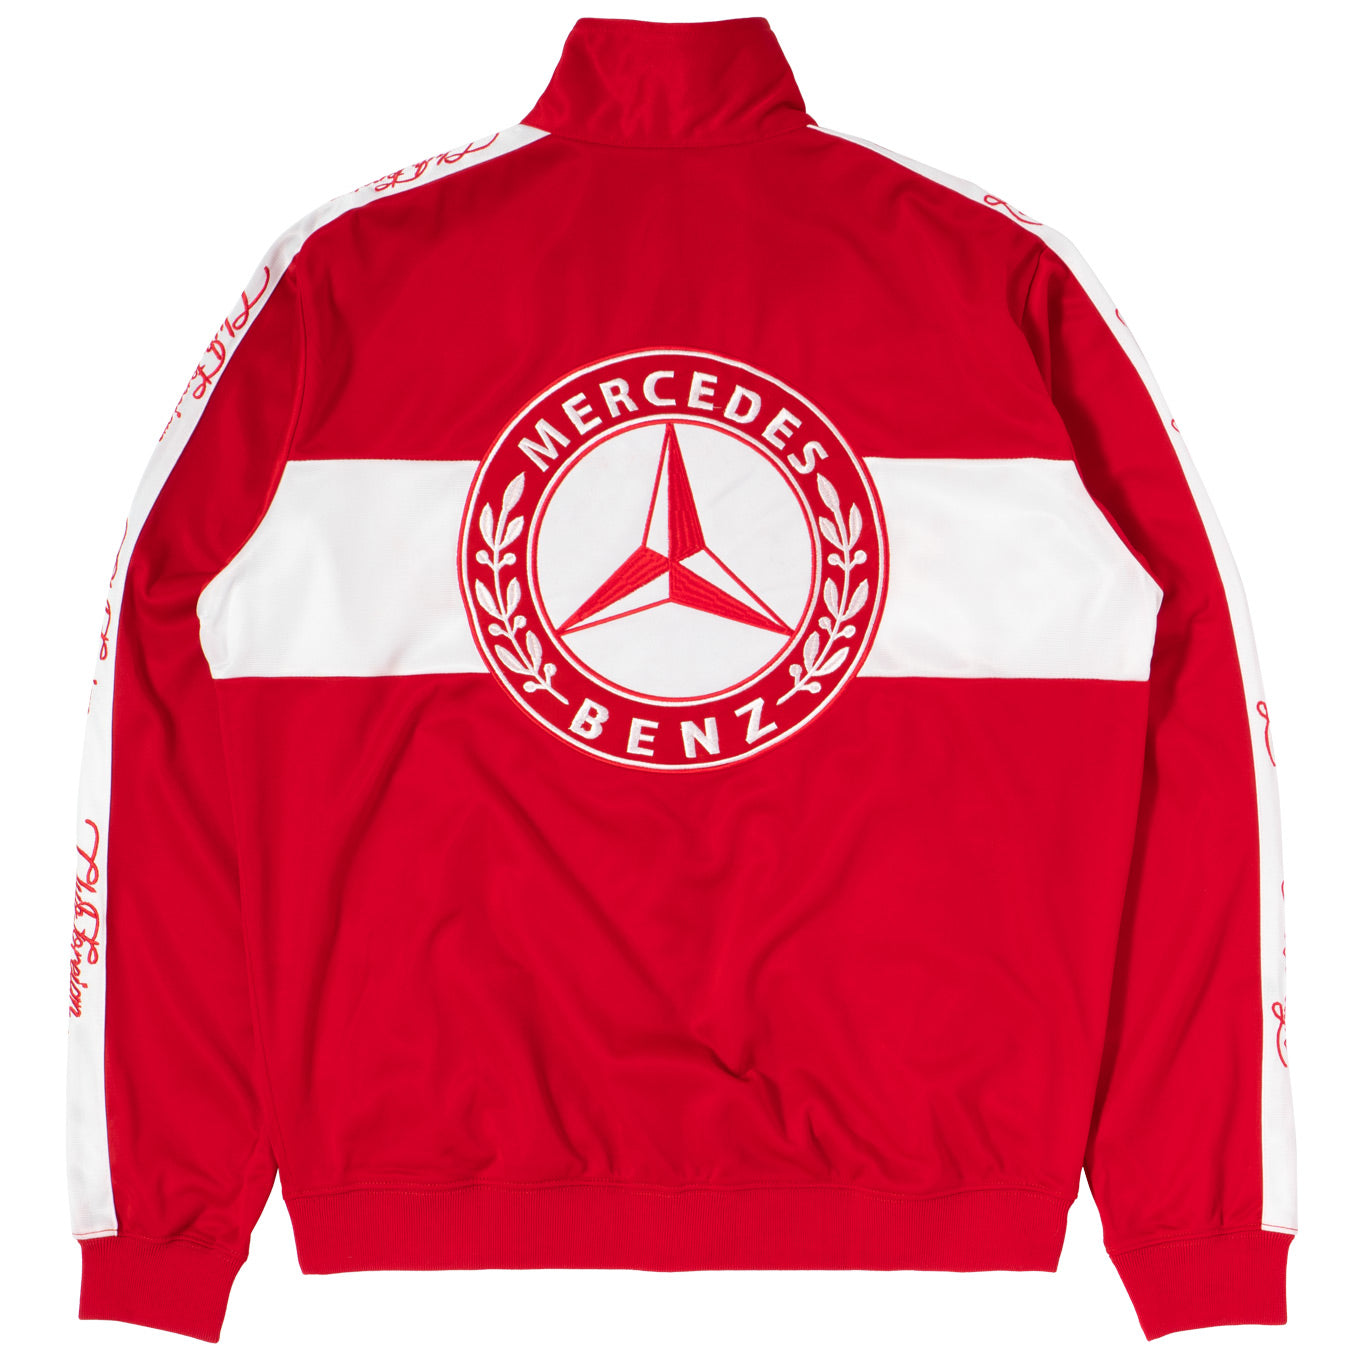 "ClubForeign Tracksuit For Men Jacket and Pants ""Merc"" Red"